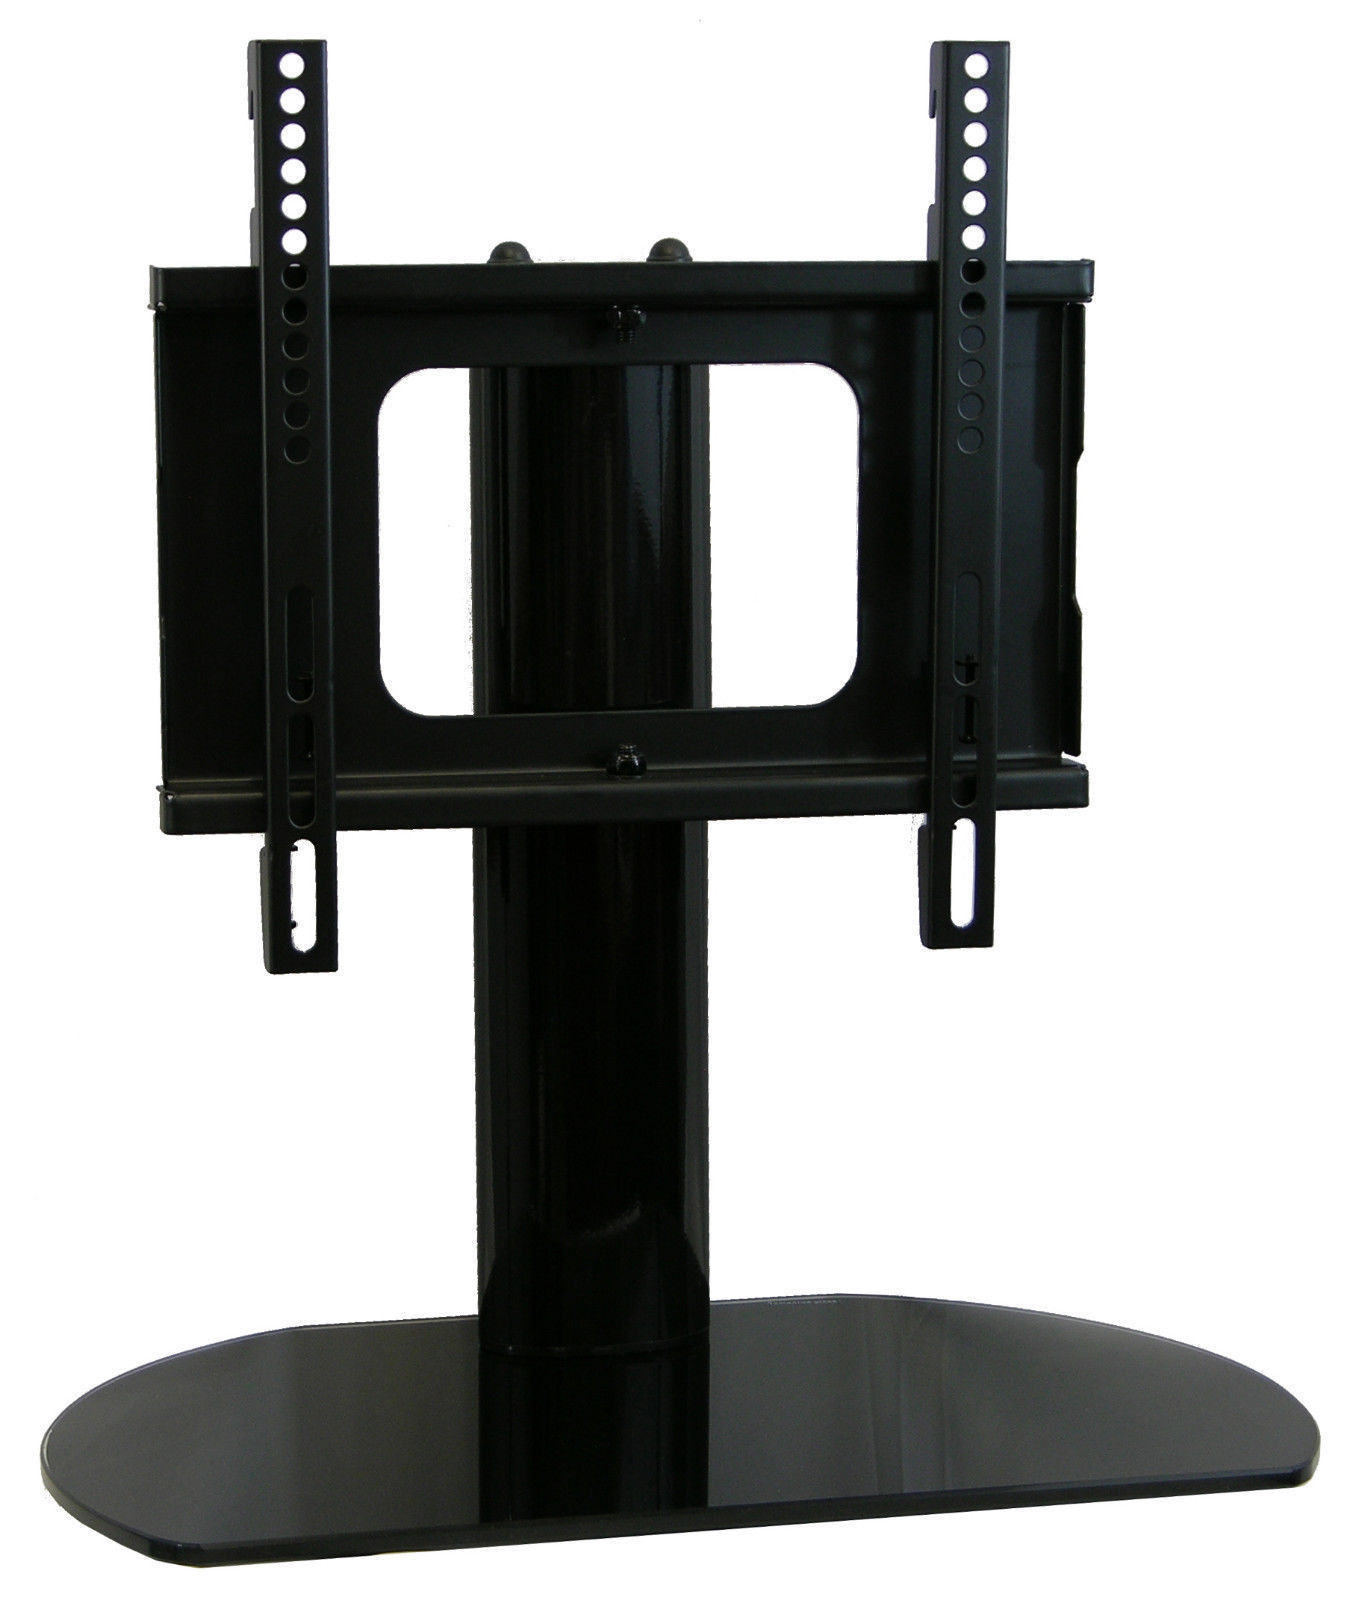 New Universal Replacement Swivel TV Stand/Base for Vizio D24h-C1